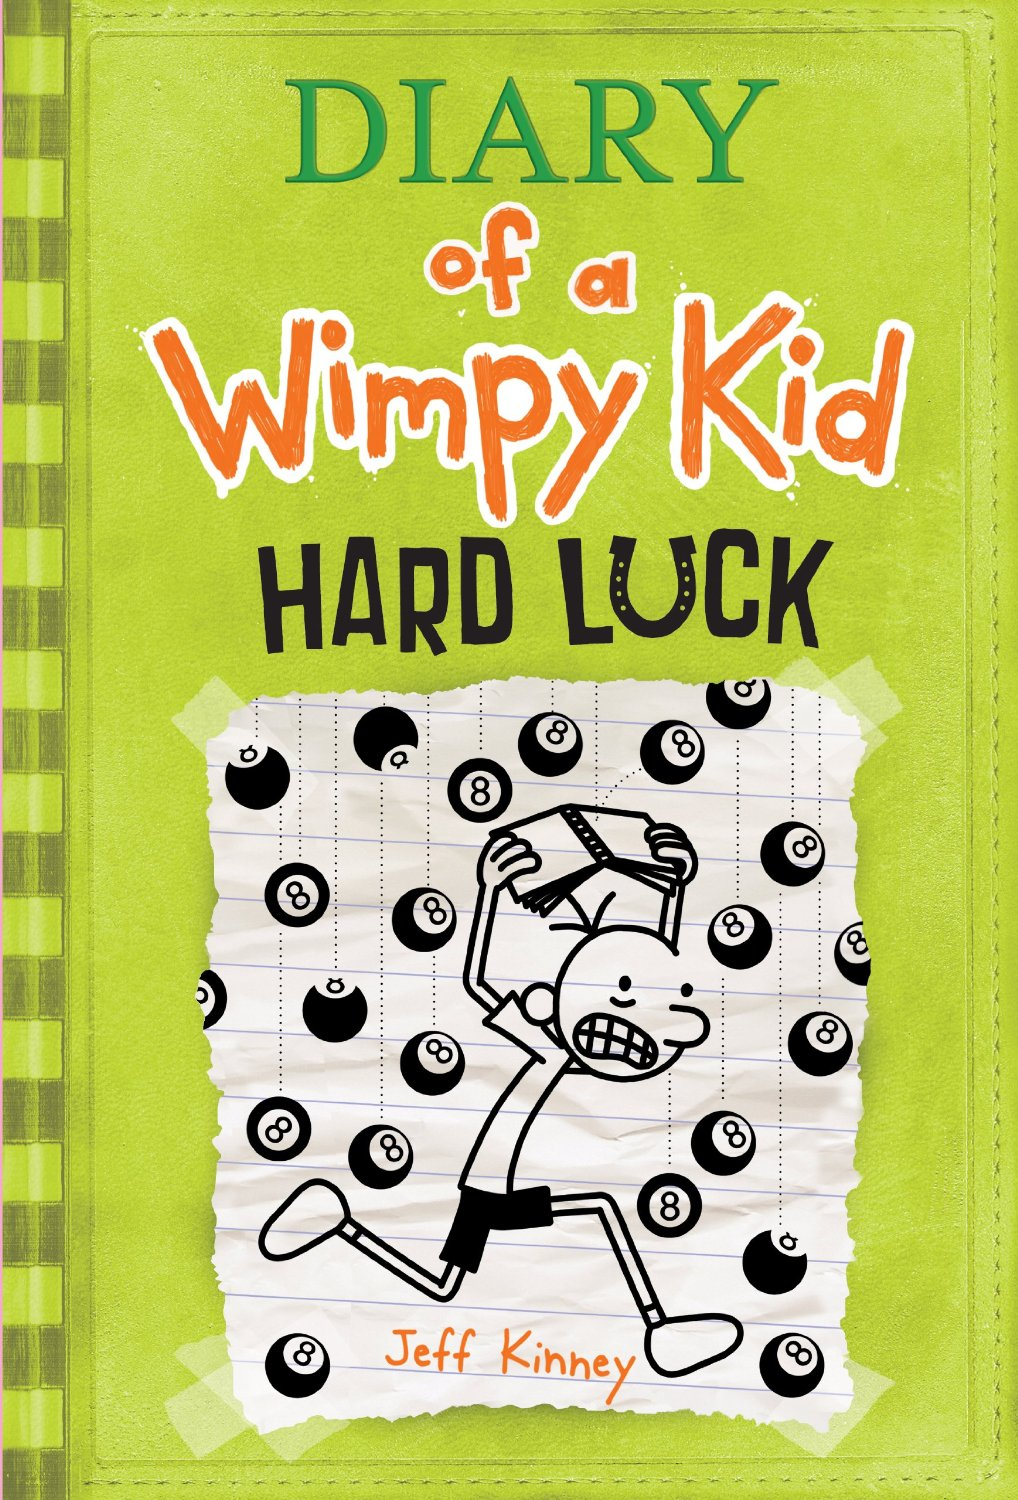 Diary Of A Fashion Mister Strictly Confidential: Jeff Kinney Announces Diary Of A Wimpy Kid Book 8 With